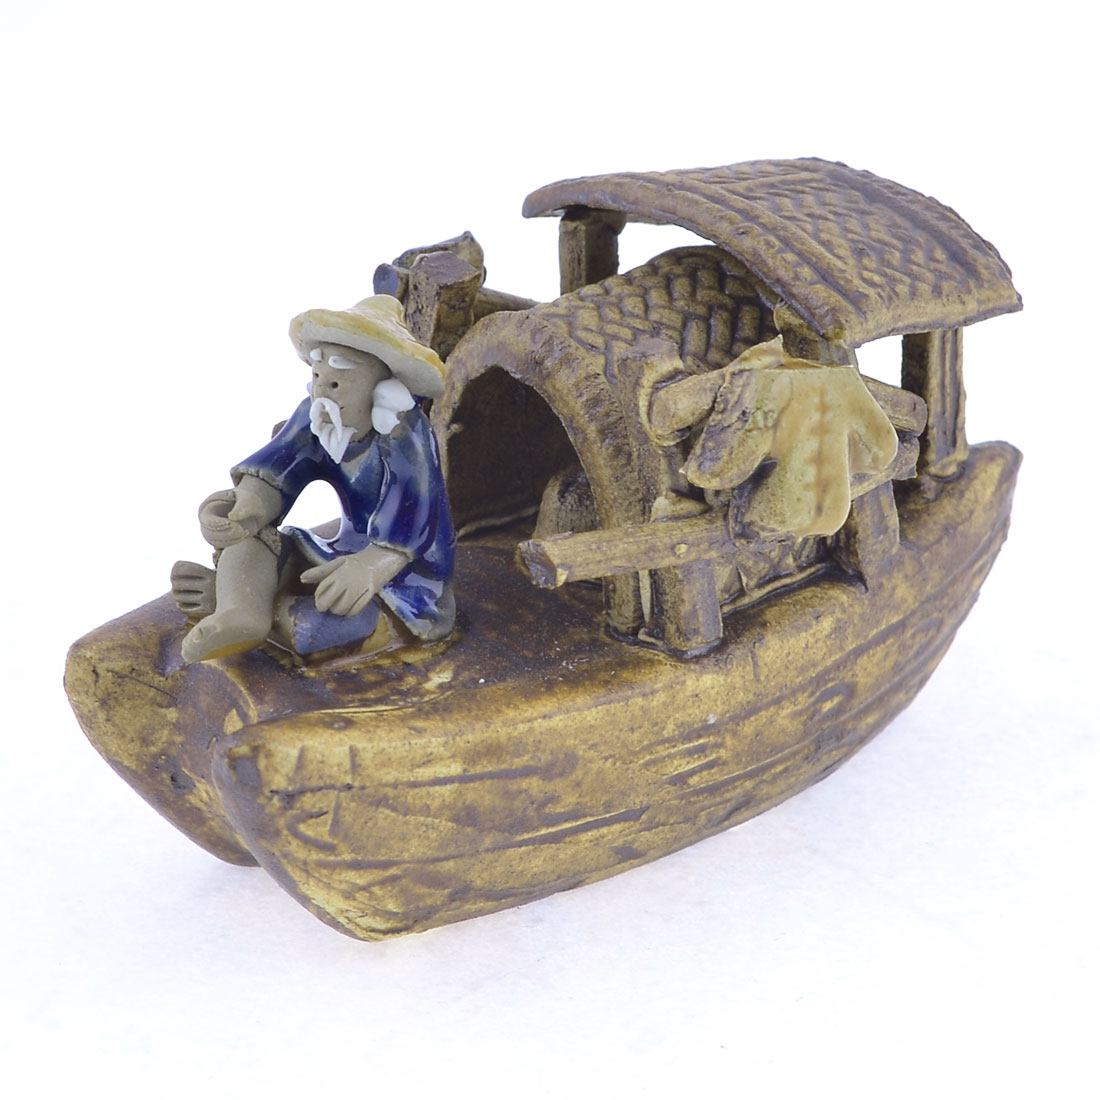 Handmade Manmade 6cm High Coffee Color Ceramic Craft Boat Old Fisherman Decoration